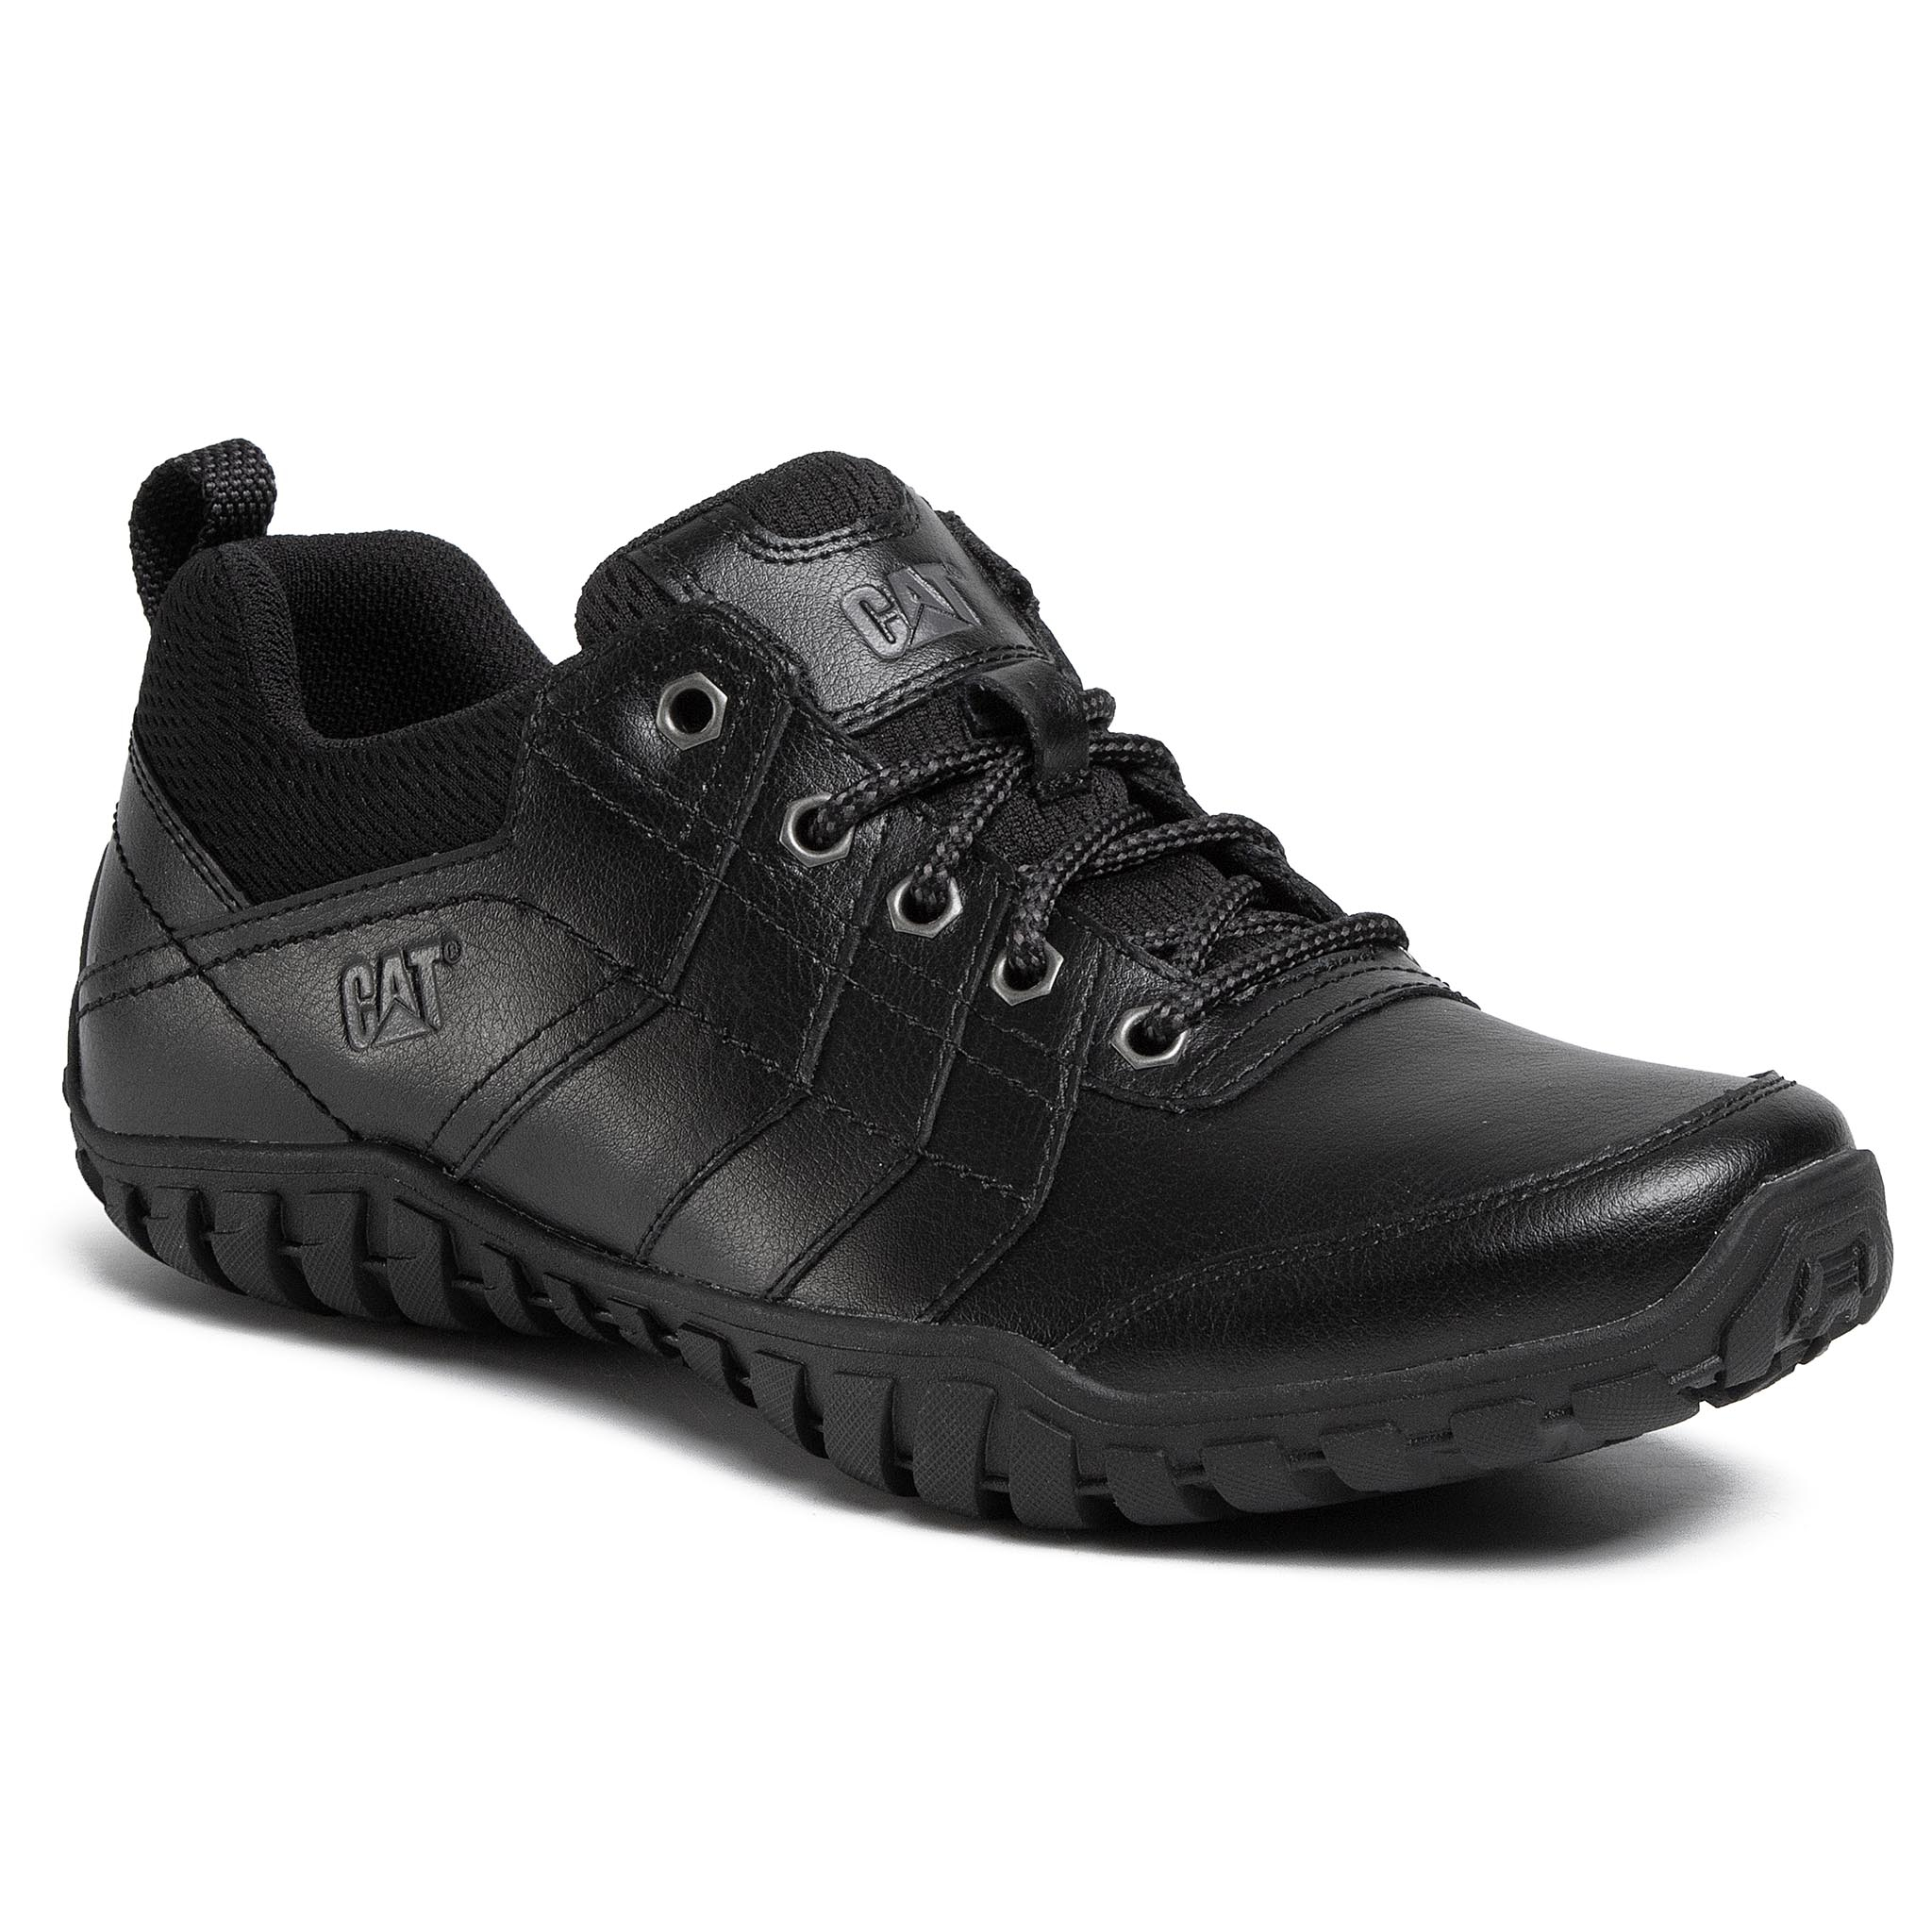 Pantofi CATERPILLAR - Instruct P724000 Black